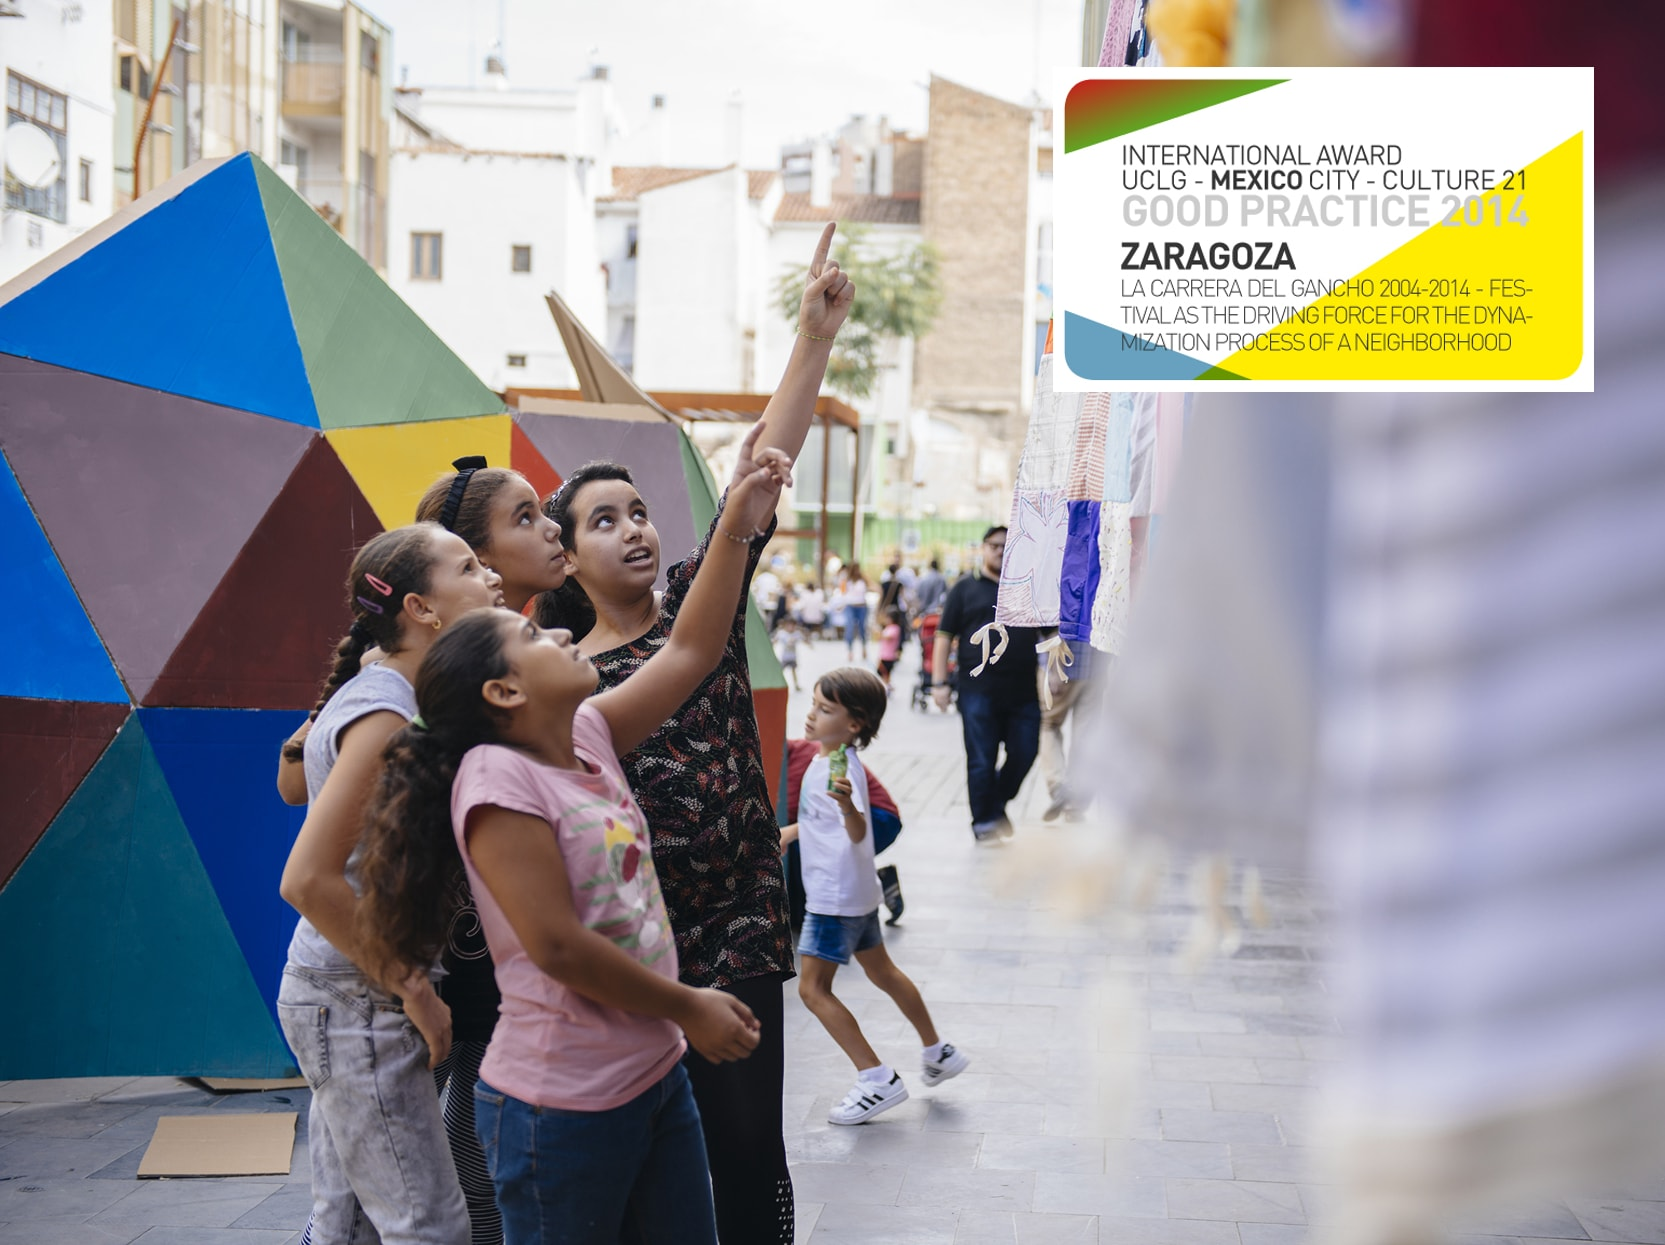 La Carrera del Gancho: the Festival, a driving force in the process of neighbourhood enhancement, Zaragoza